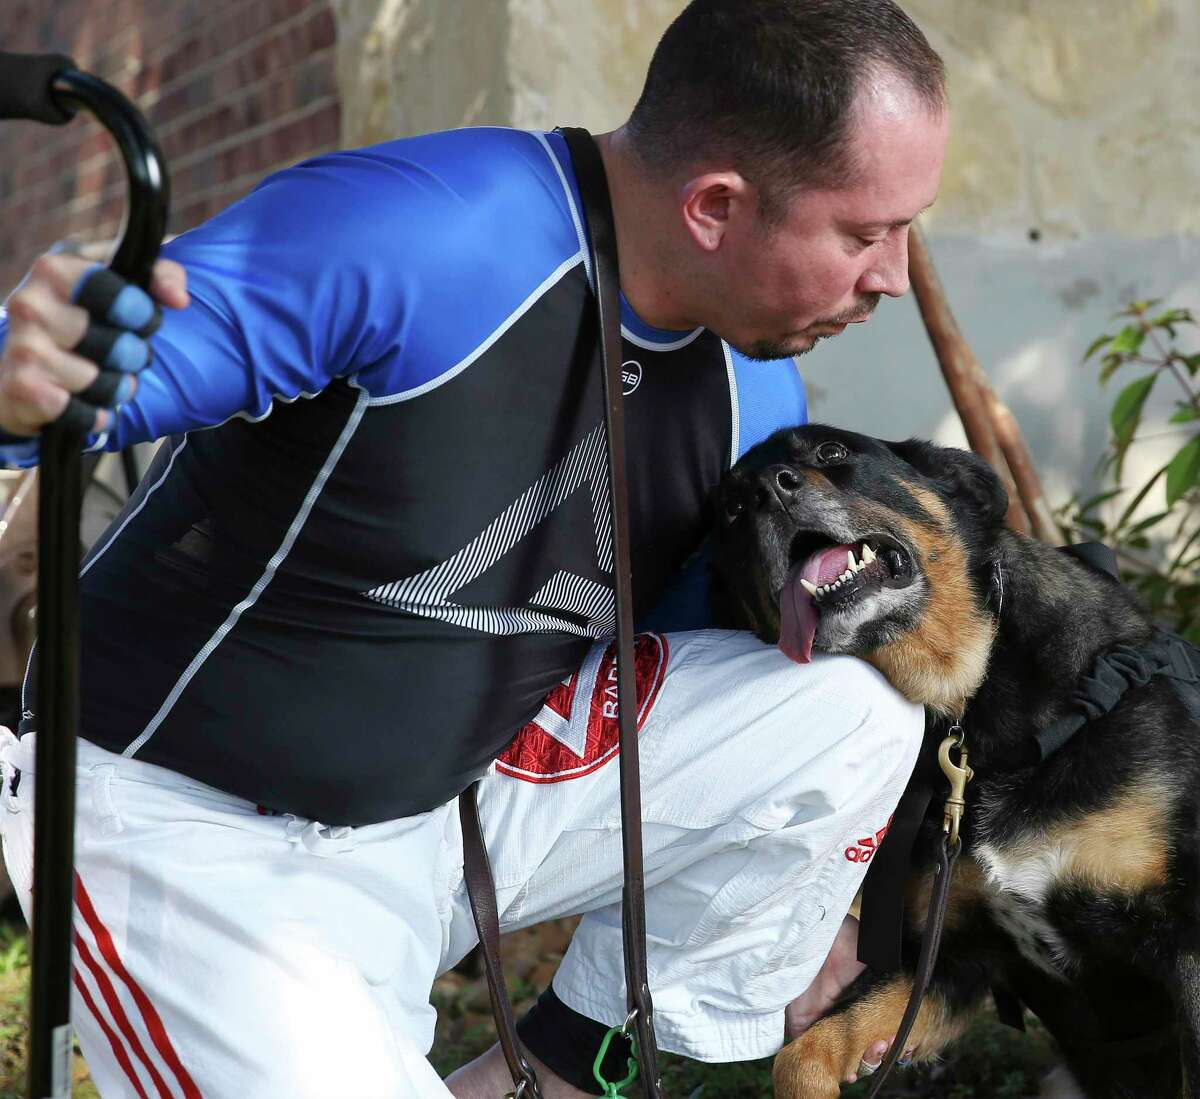 Retired Army Sgt. 1st Class Jaime Leon is one of more than 700 military veterans paired with a dog trained by K9s for Warriors to help veterans with PTSD and military-related trauma. Leon's dog, a German shepherd-Rottweiler mix named Shadow, has helped lower his anxiety since they were matched together seven years ago.